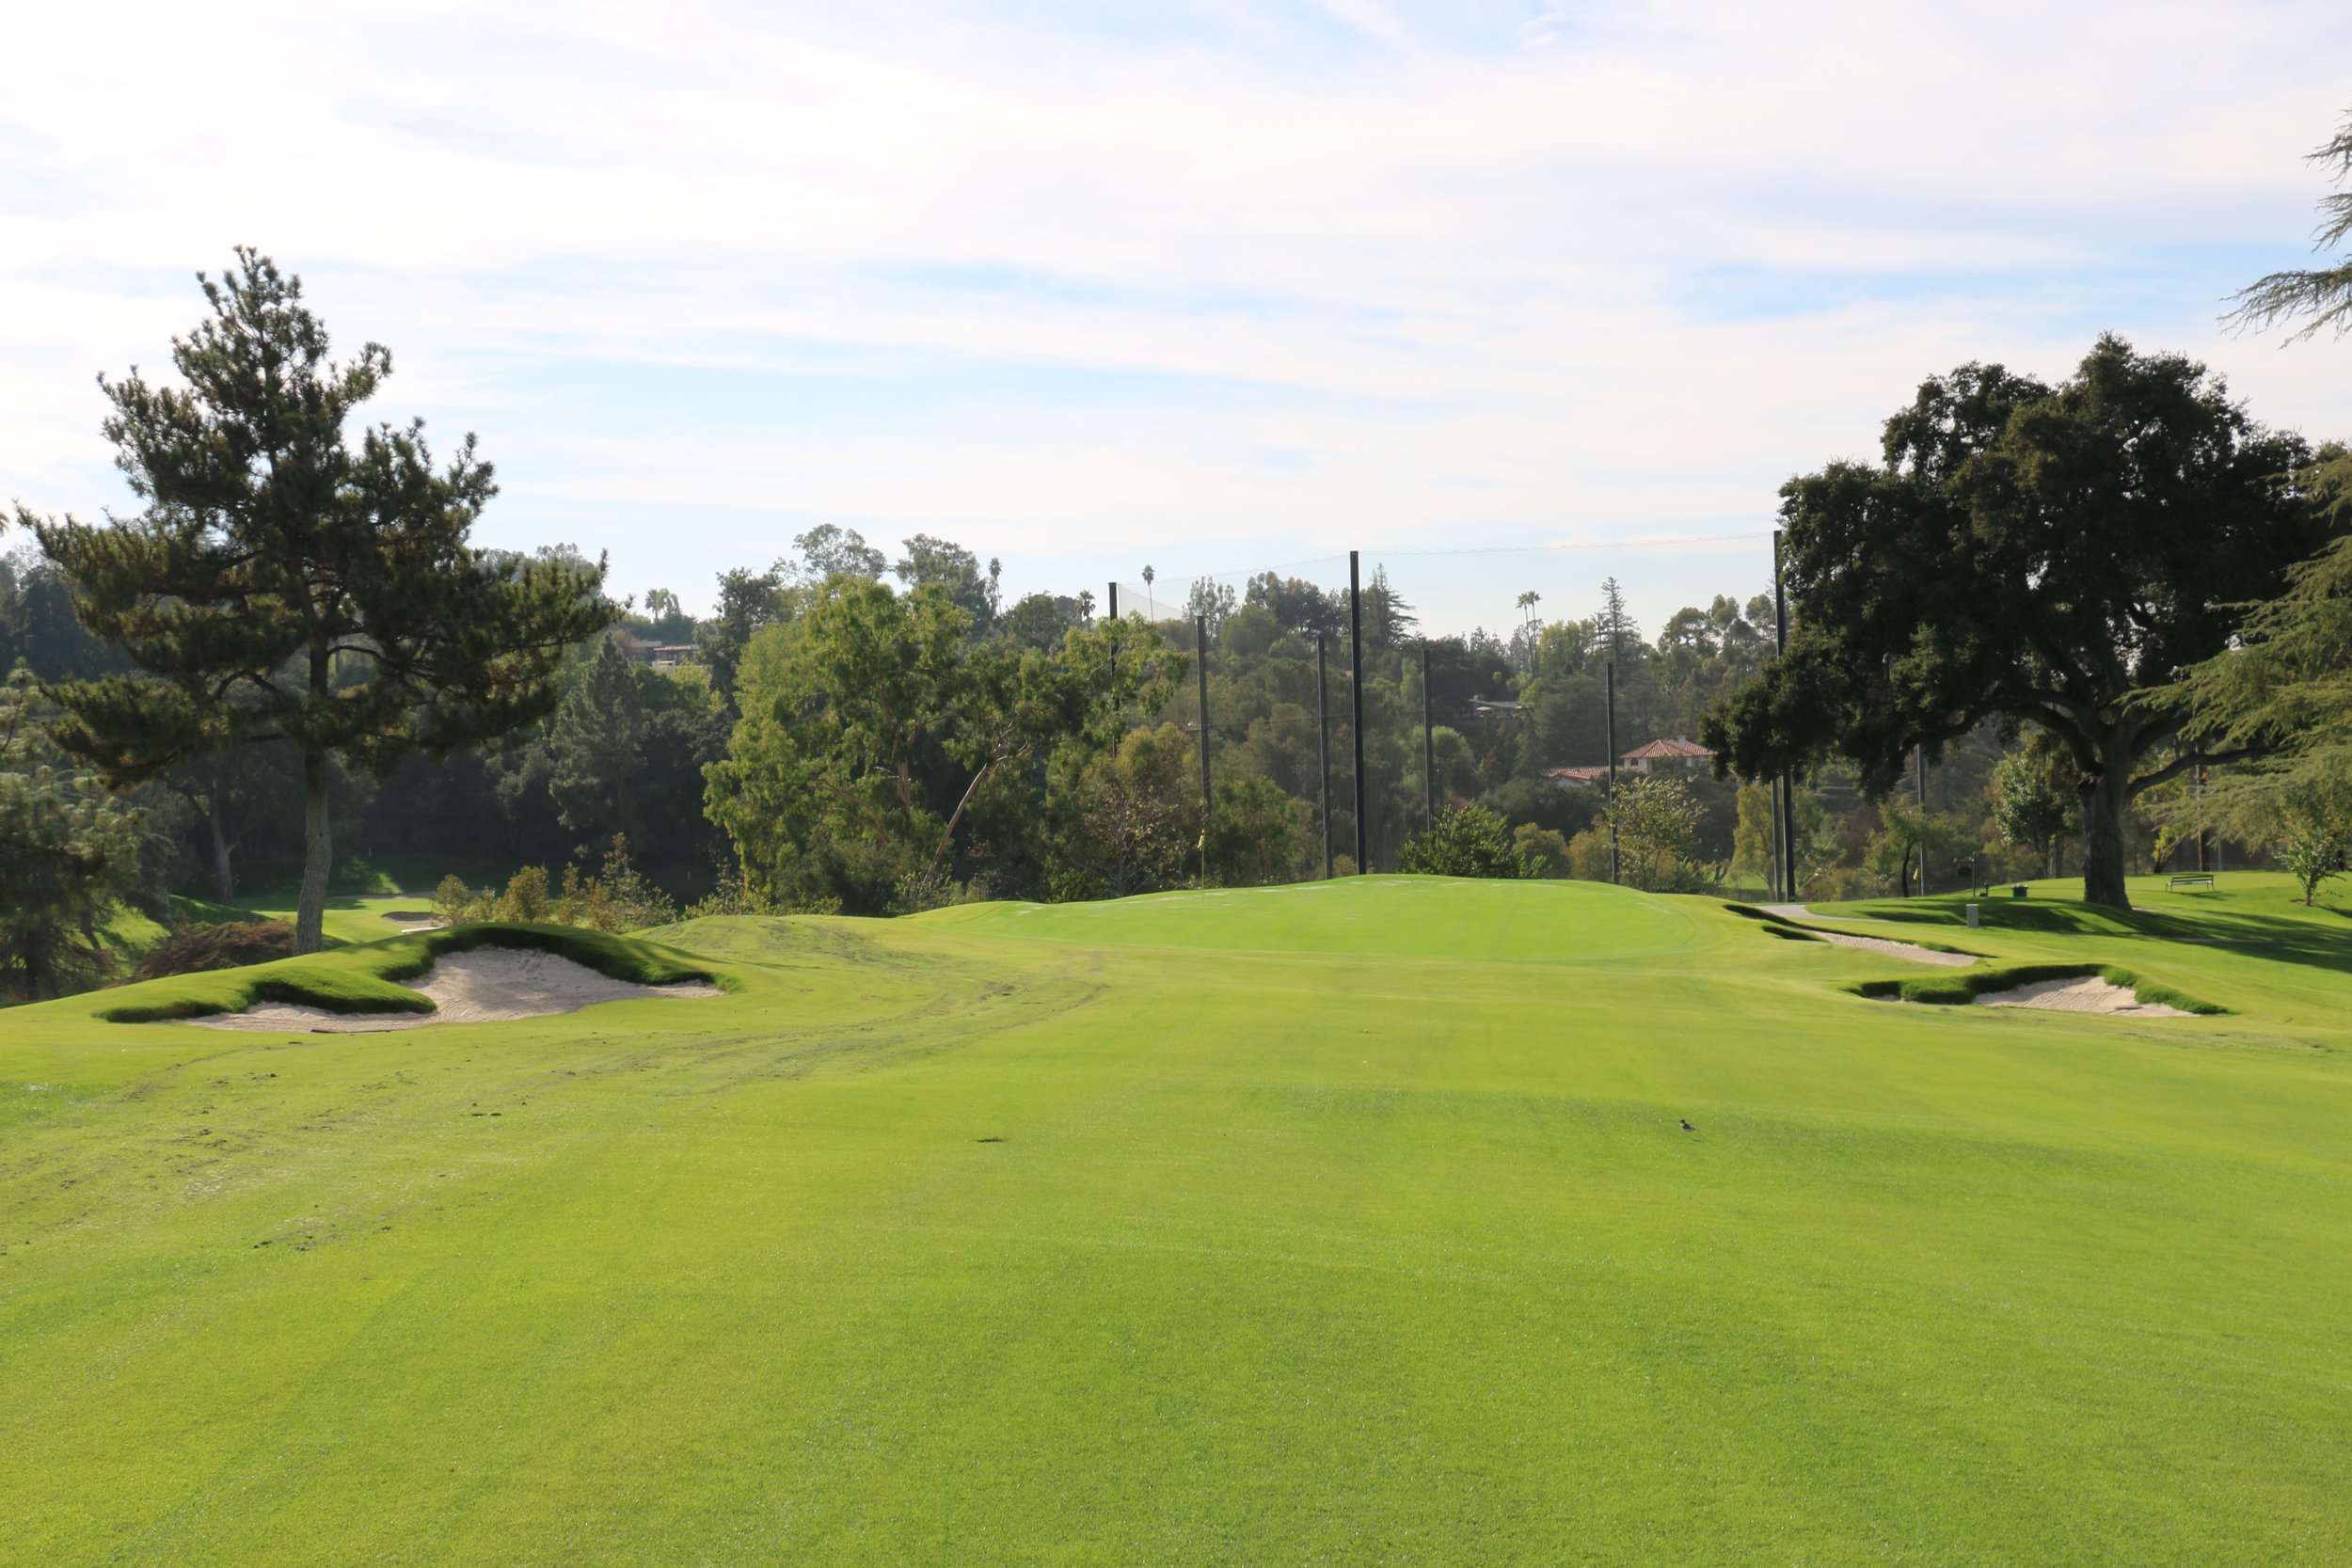 The 4th green was once guarded by trees, but now they are gone with the green surface pushed to the edge and softened to create nerve-wracking left and back hole locations. The two short bunkers left and right are new additions. Image courtesy of Todd Eckenrode, Origins Golf Design.